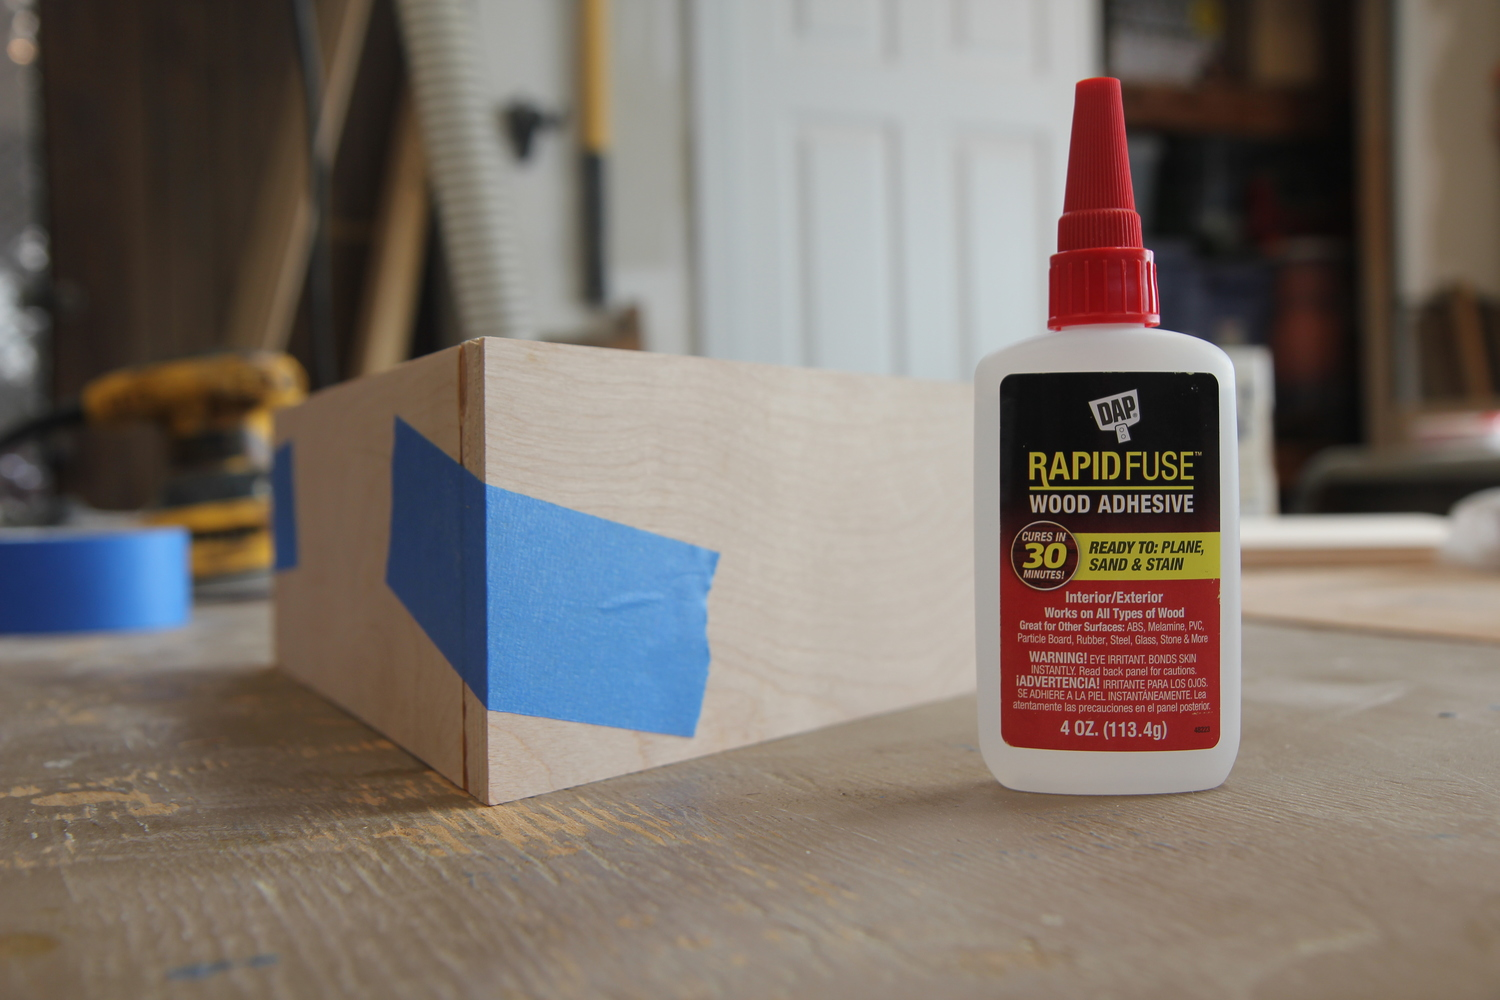 DAP's new Rapid Fuse wood adhesive. First time using it on this project and worked great.